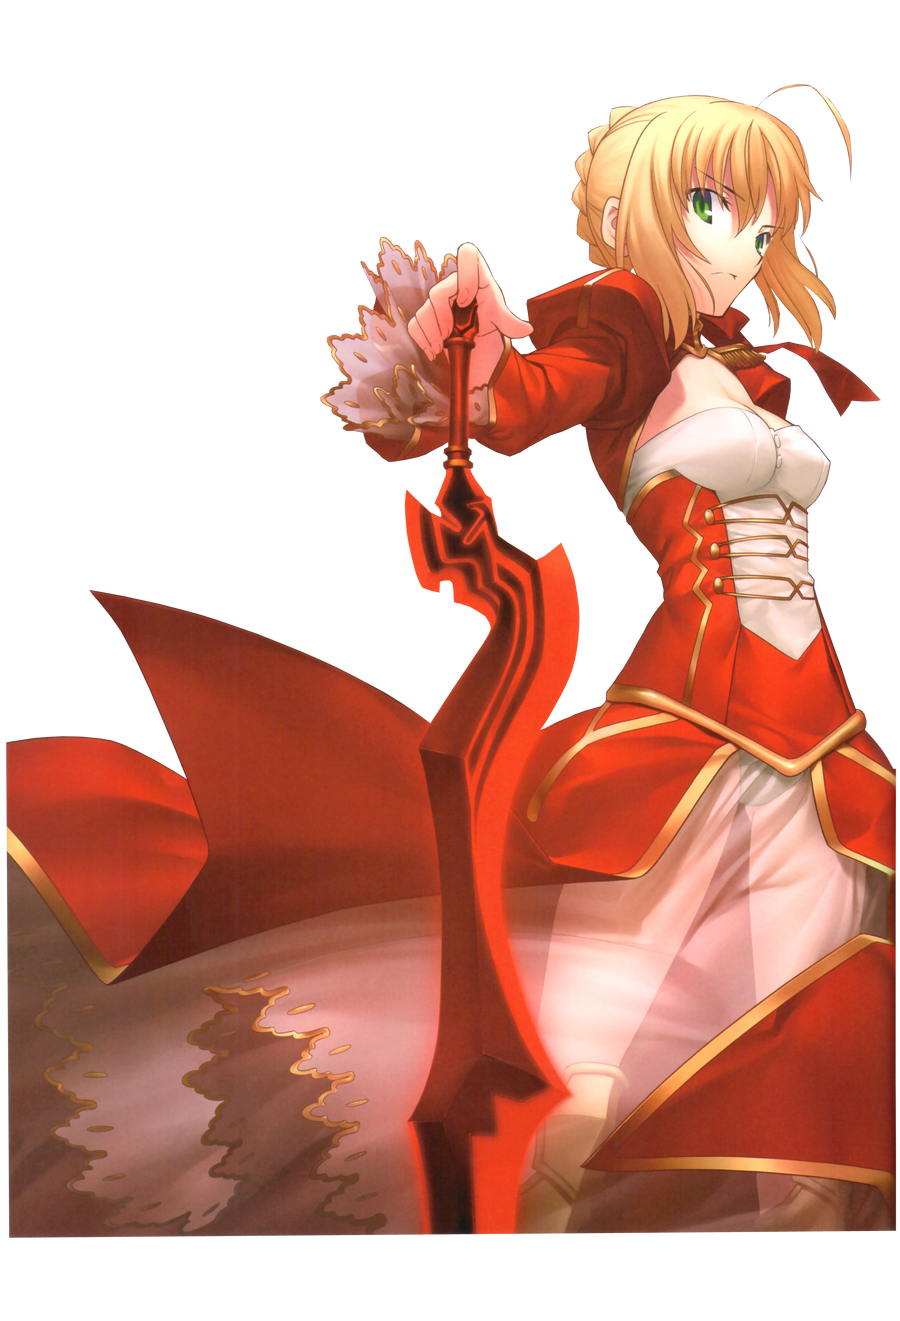 saber_in_red_2_by_sachicolate-d54rouk.pn